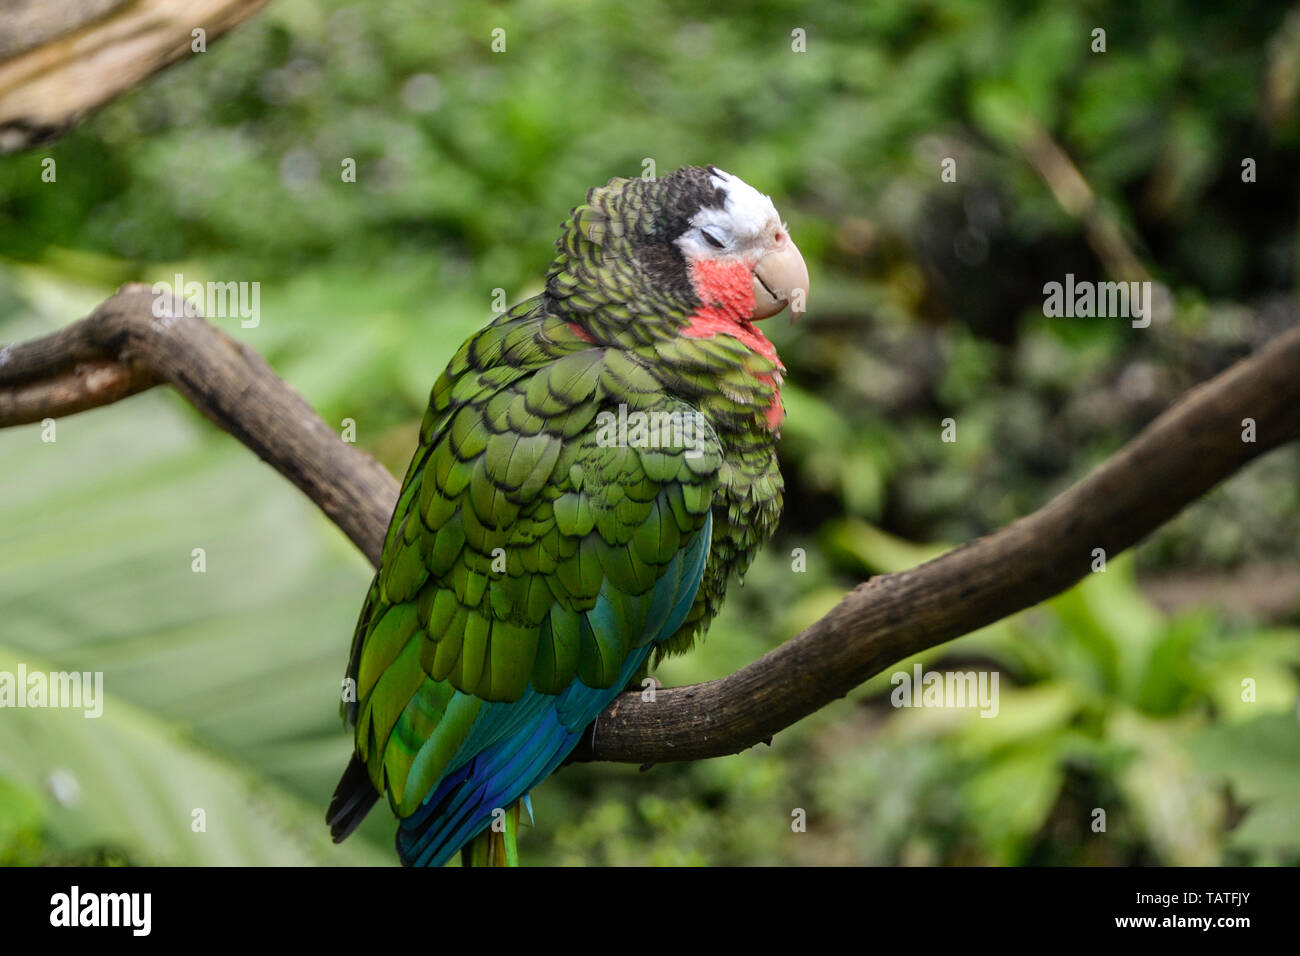 Sittacus is a genius of caribbean parrots in the subfamily Psittacinae the green parrot. The photo was taken in Zoo de Guadeloupe Karibik. - Stock Image